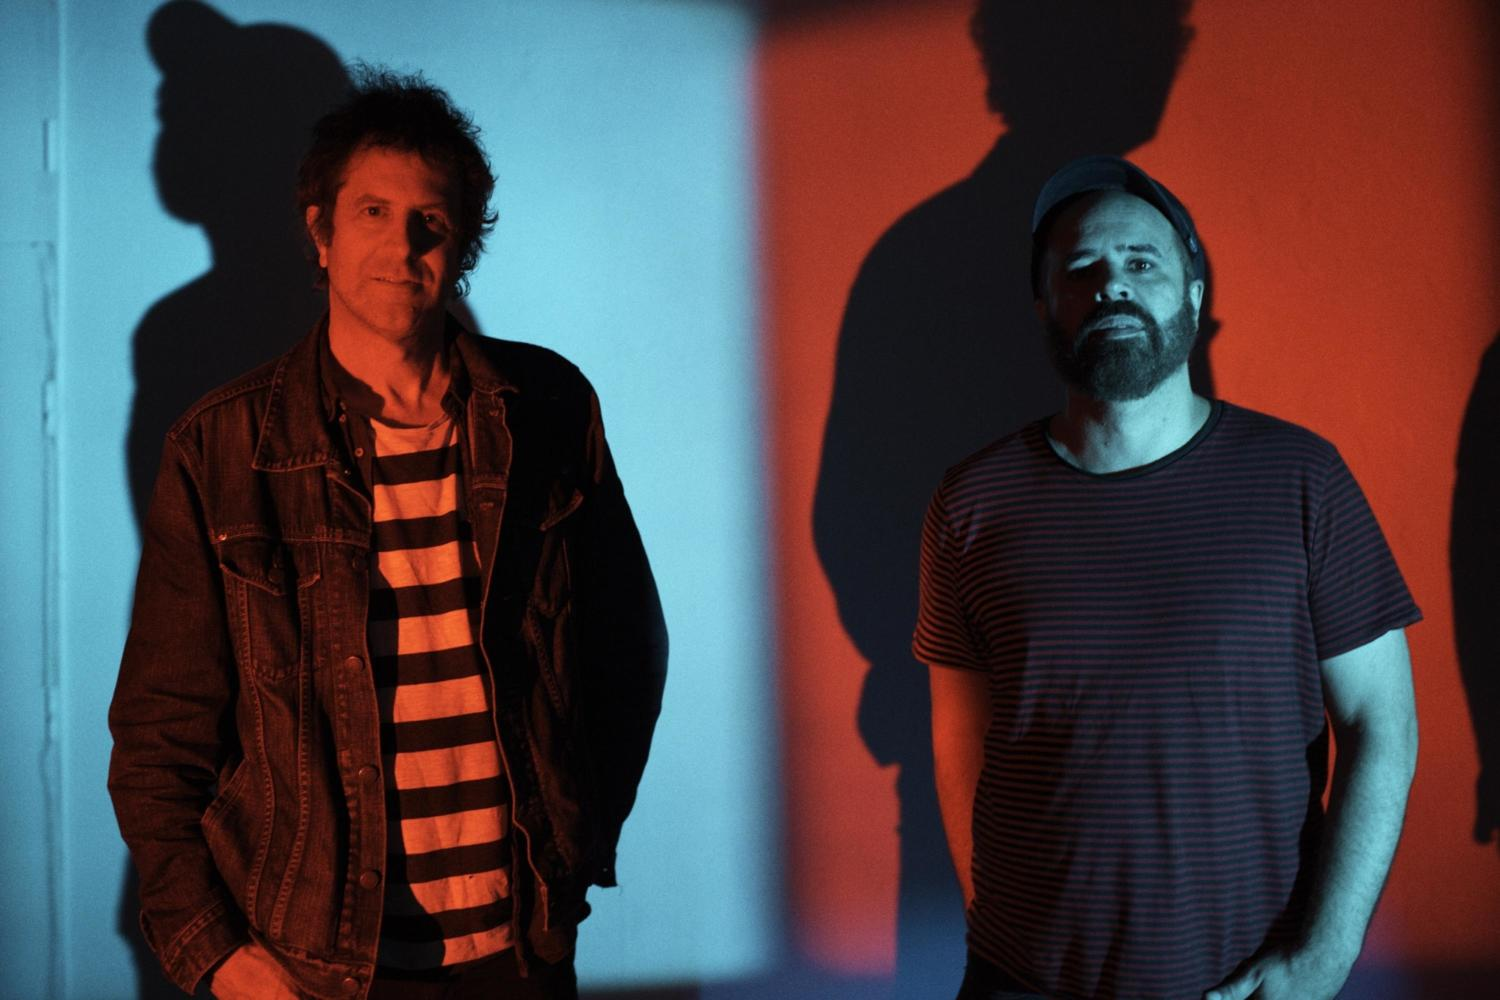 Swervedriver share another taste of 'Future Ruins' with 'Drone Lover'